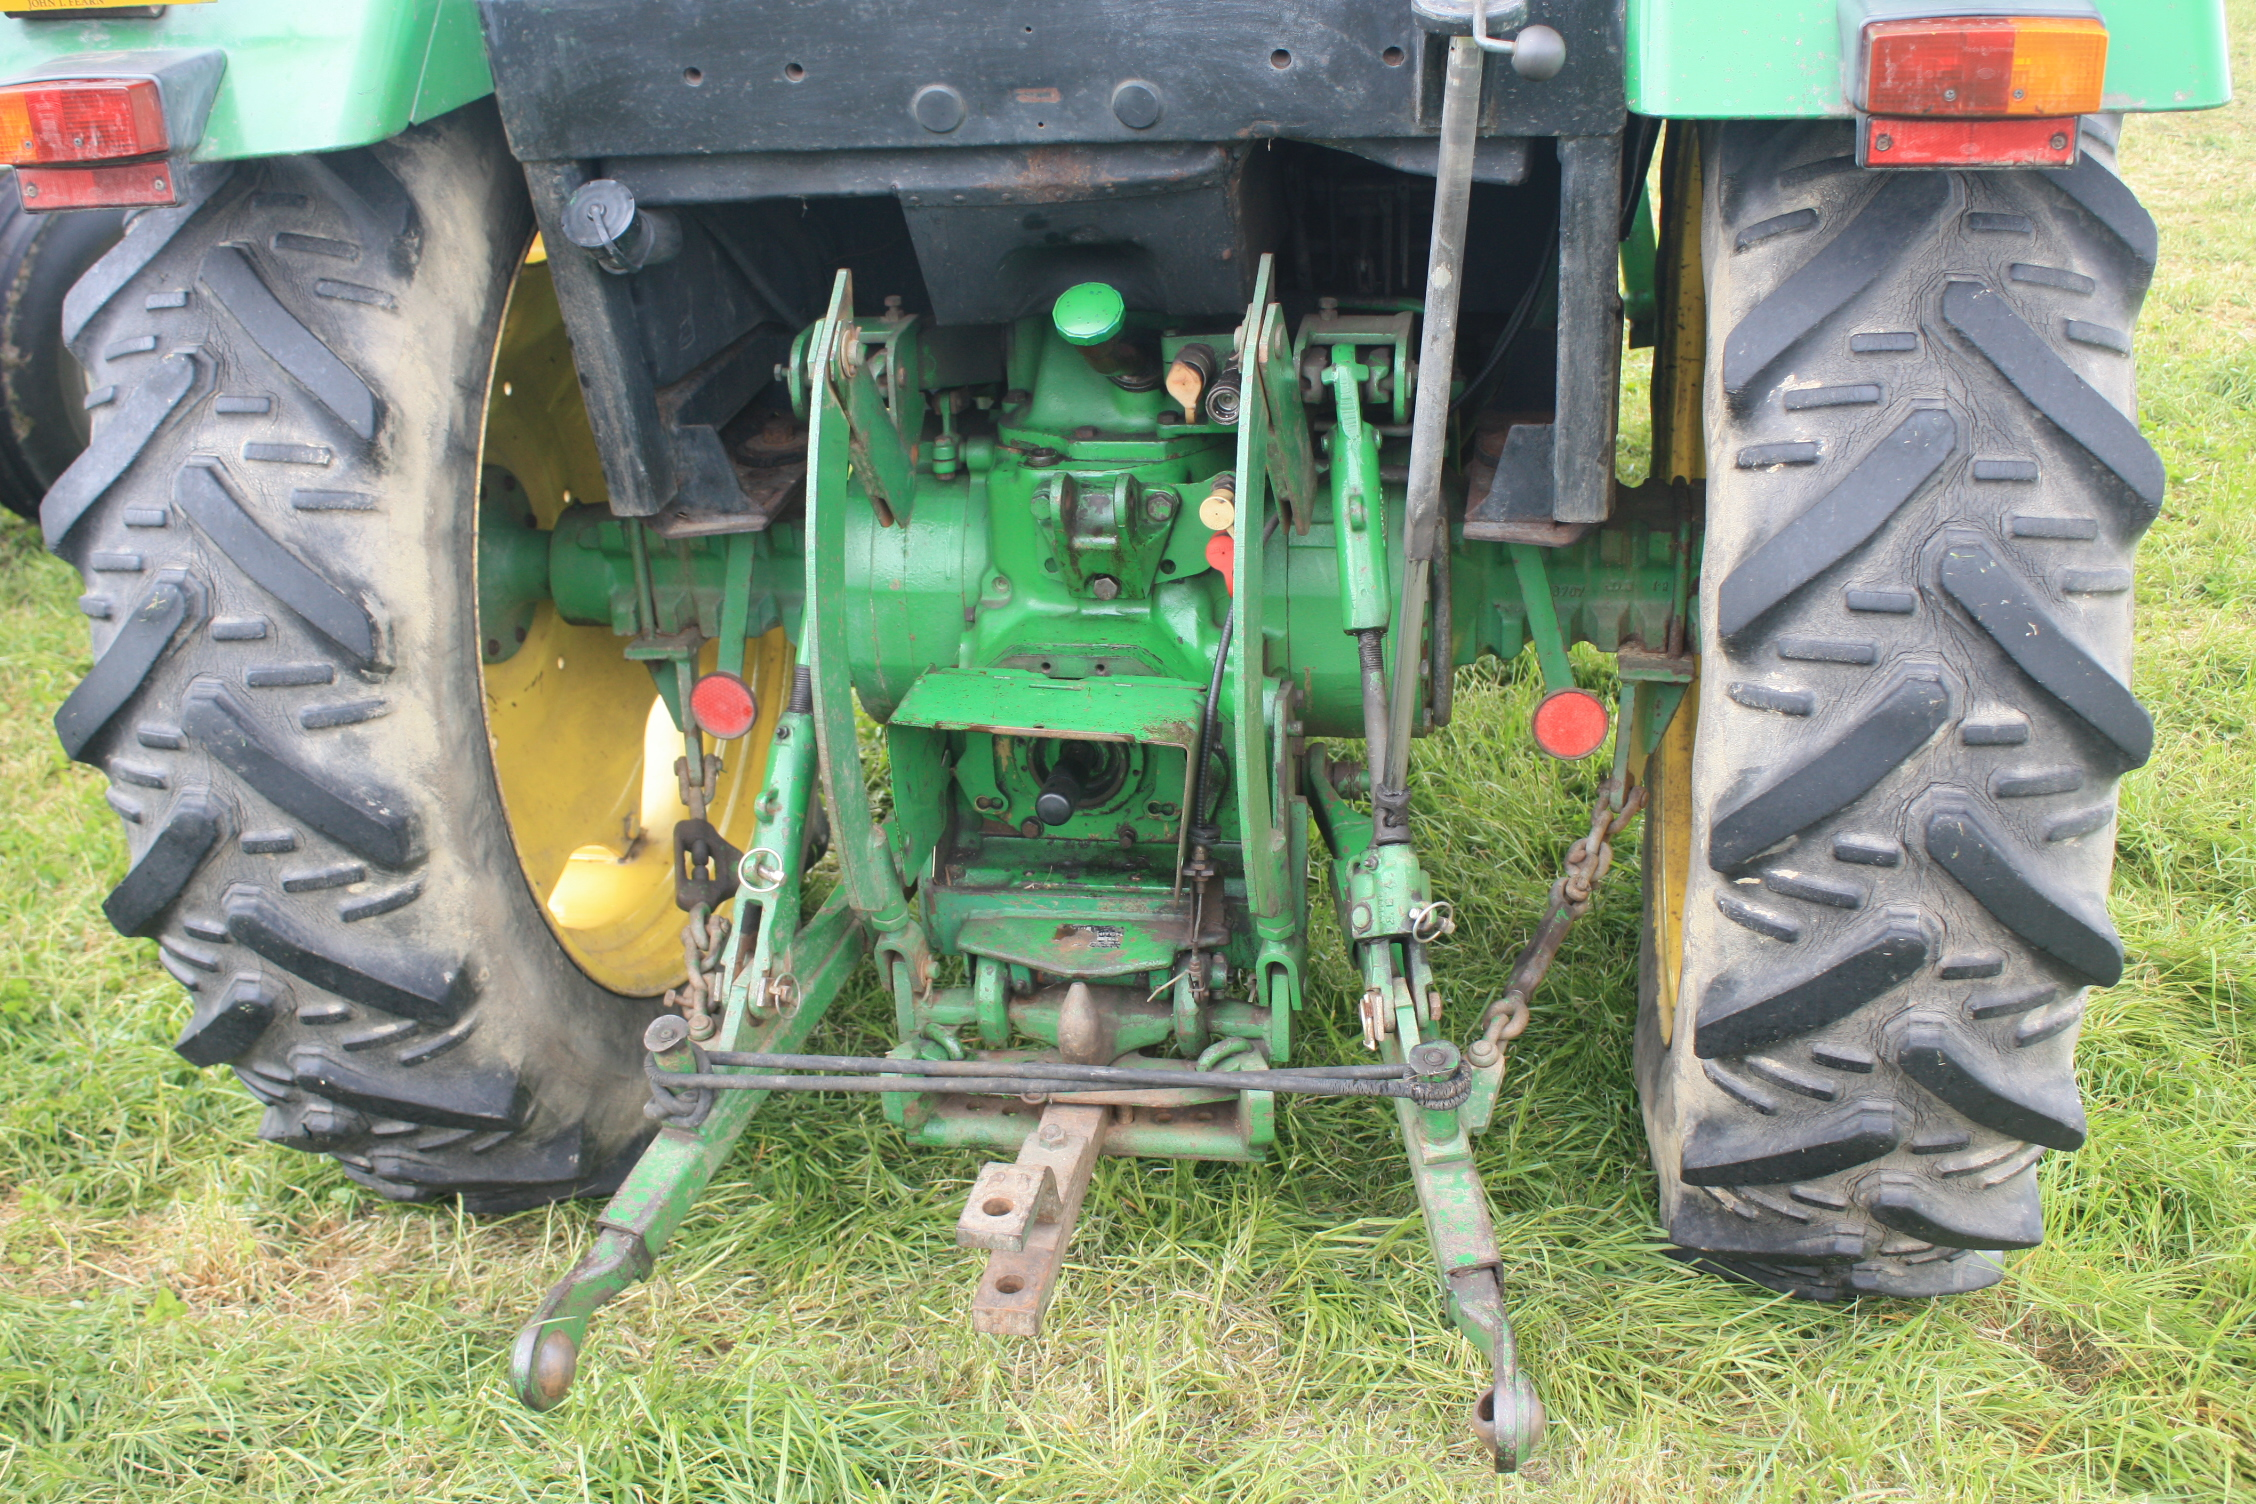 simply need deere use day lawn the lookup mowers and john but parts diagram easy find it diagrams index as sell enjoy try same with free garden locate you this shipping tractor to intent site our anything